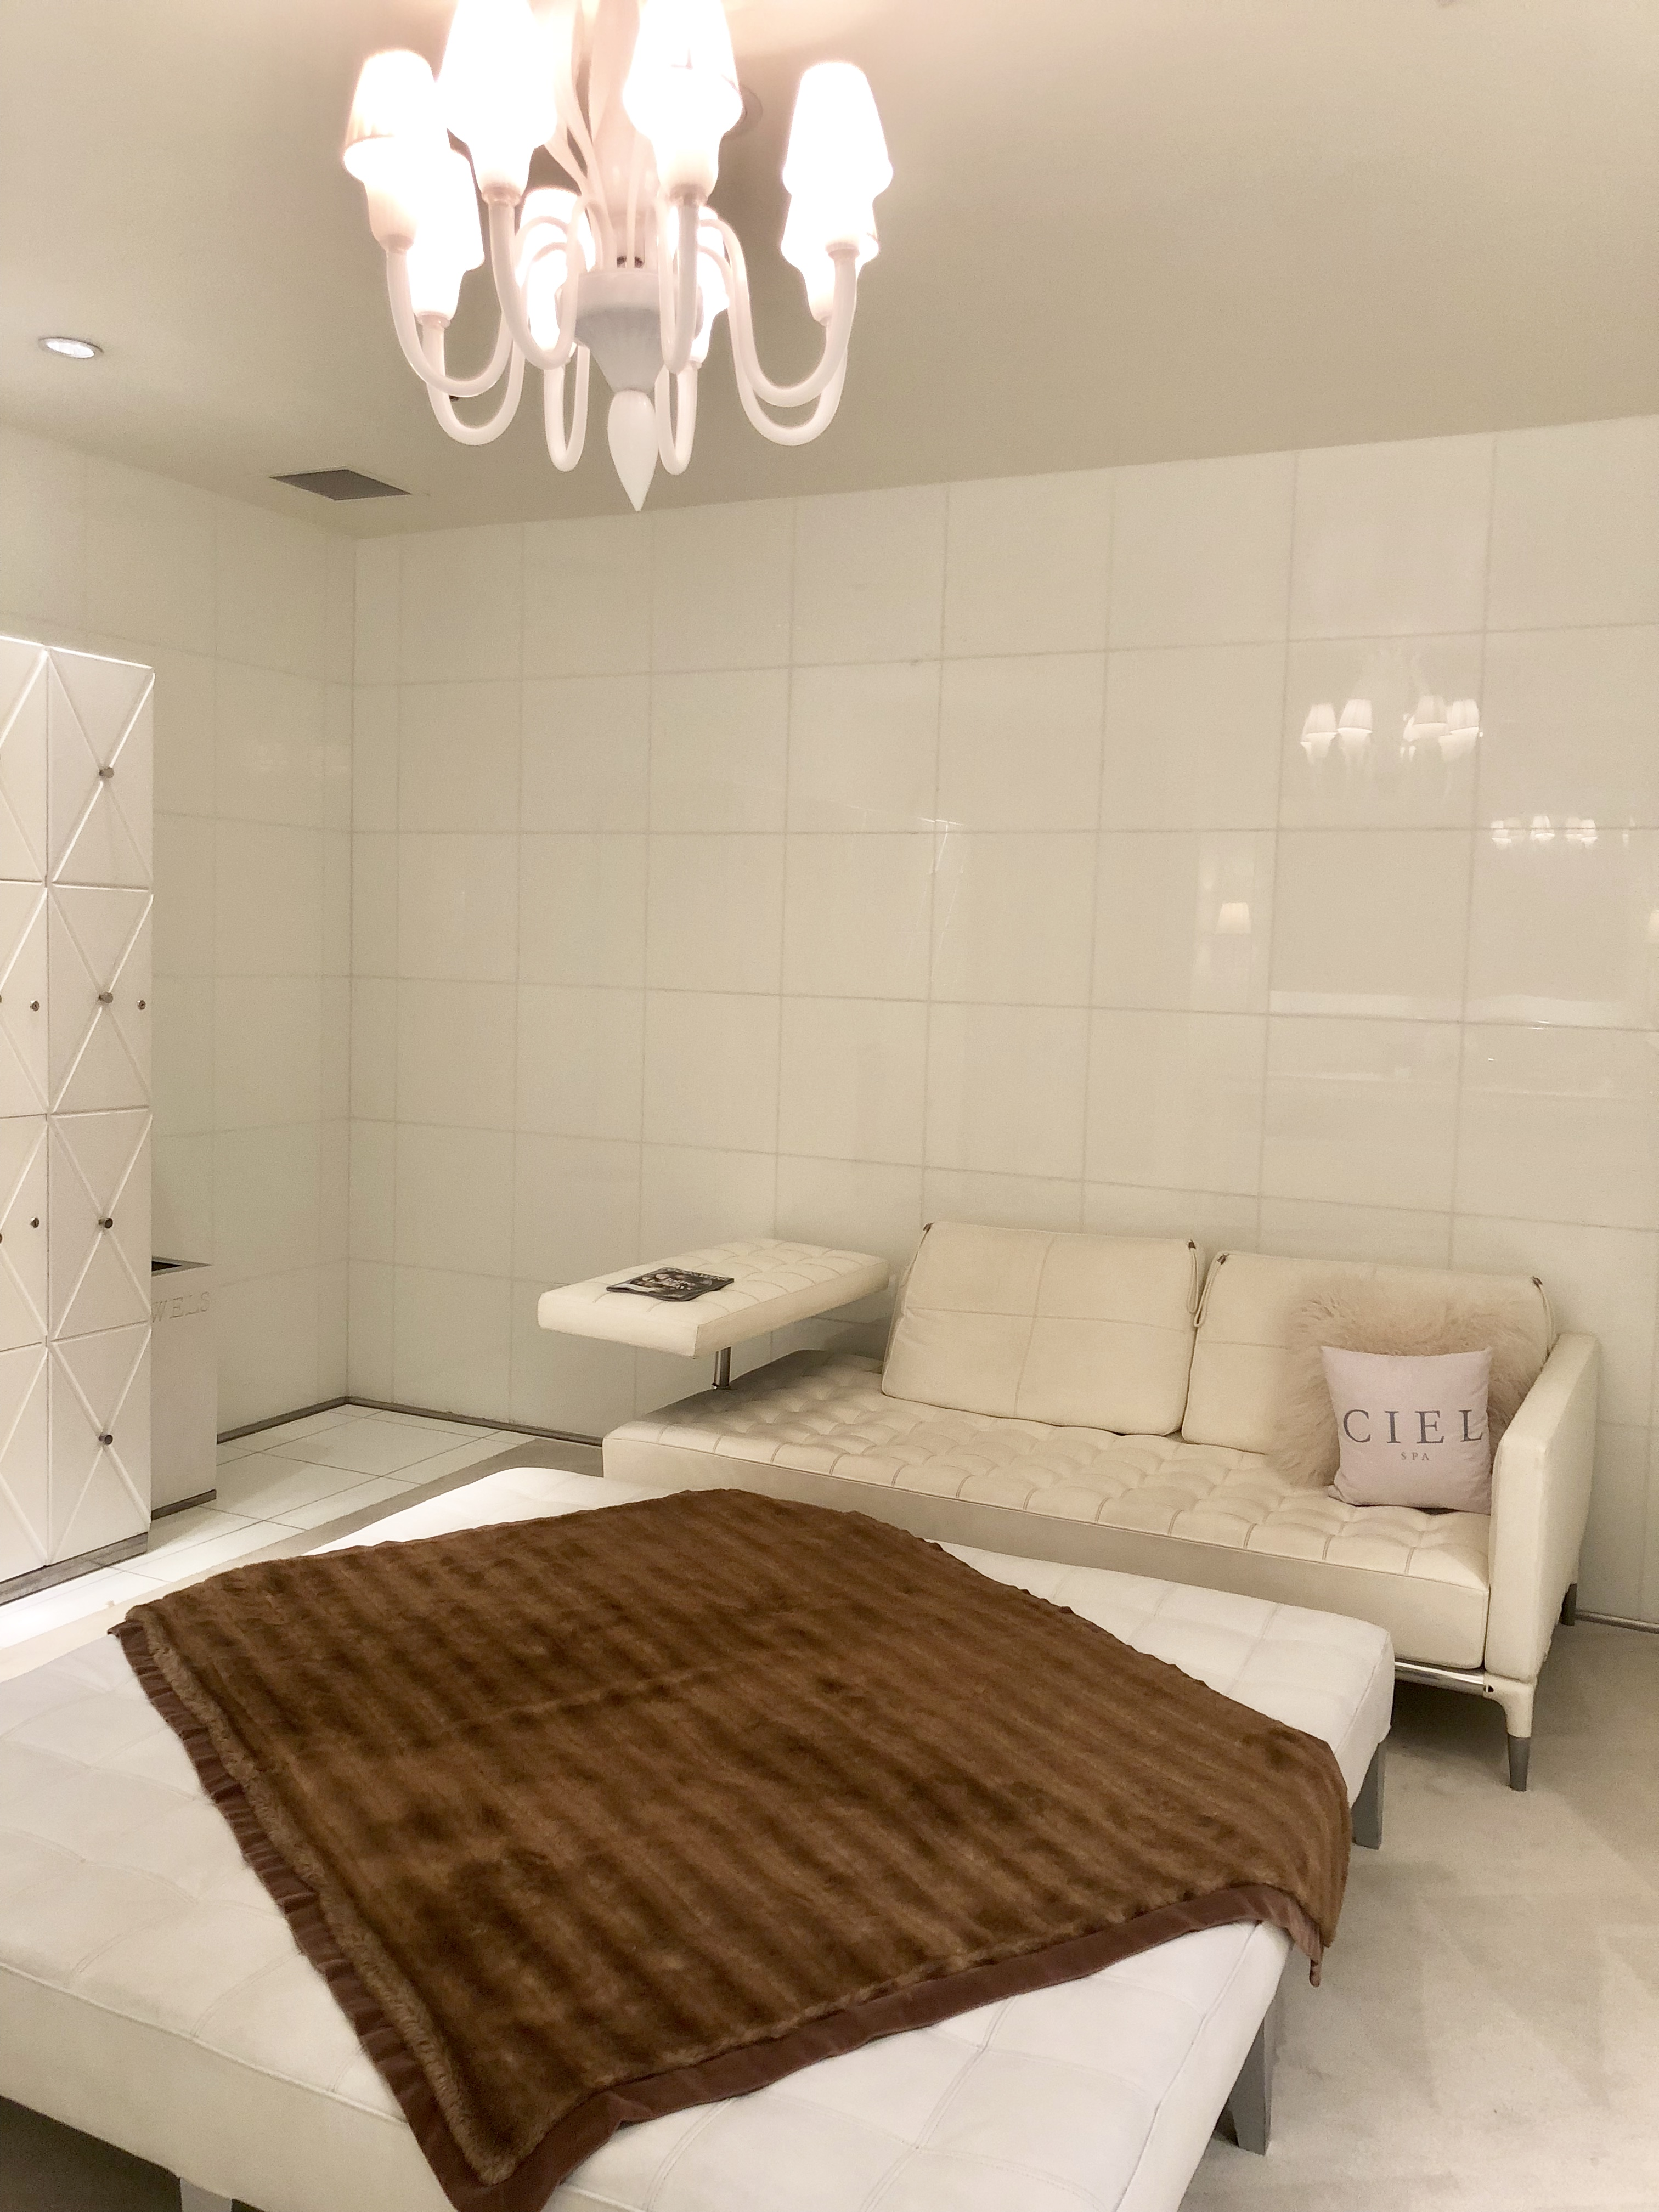 Ciel Spa at SLS - Beyond Casual B